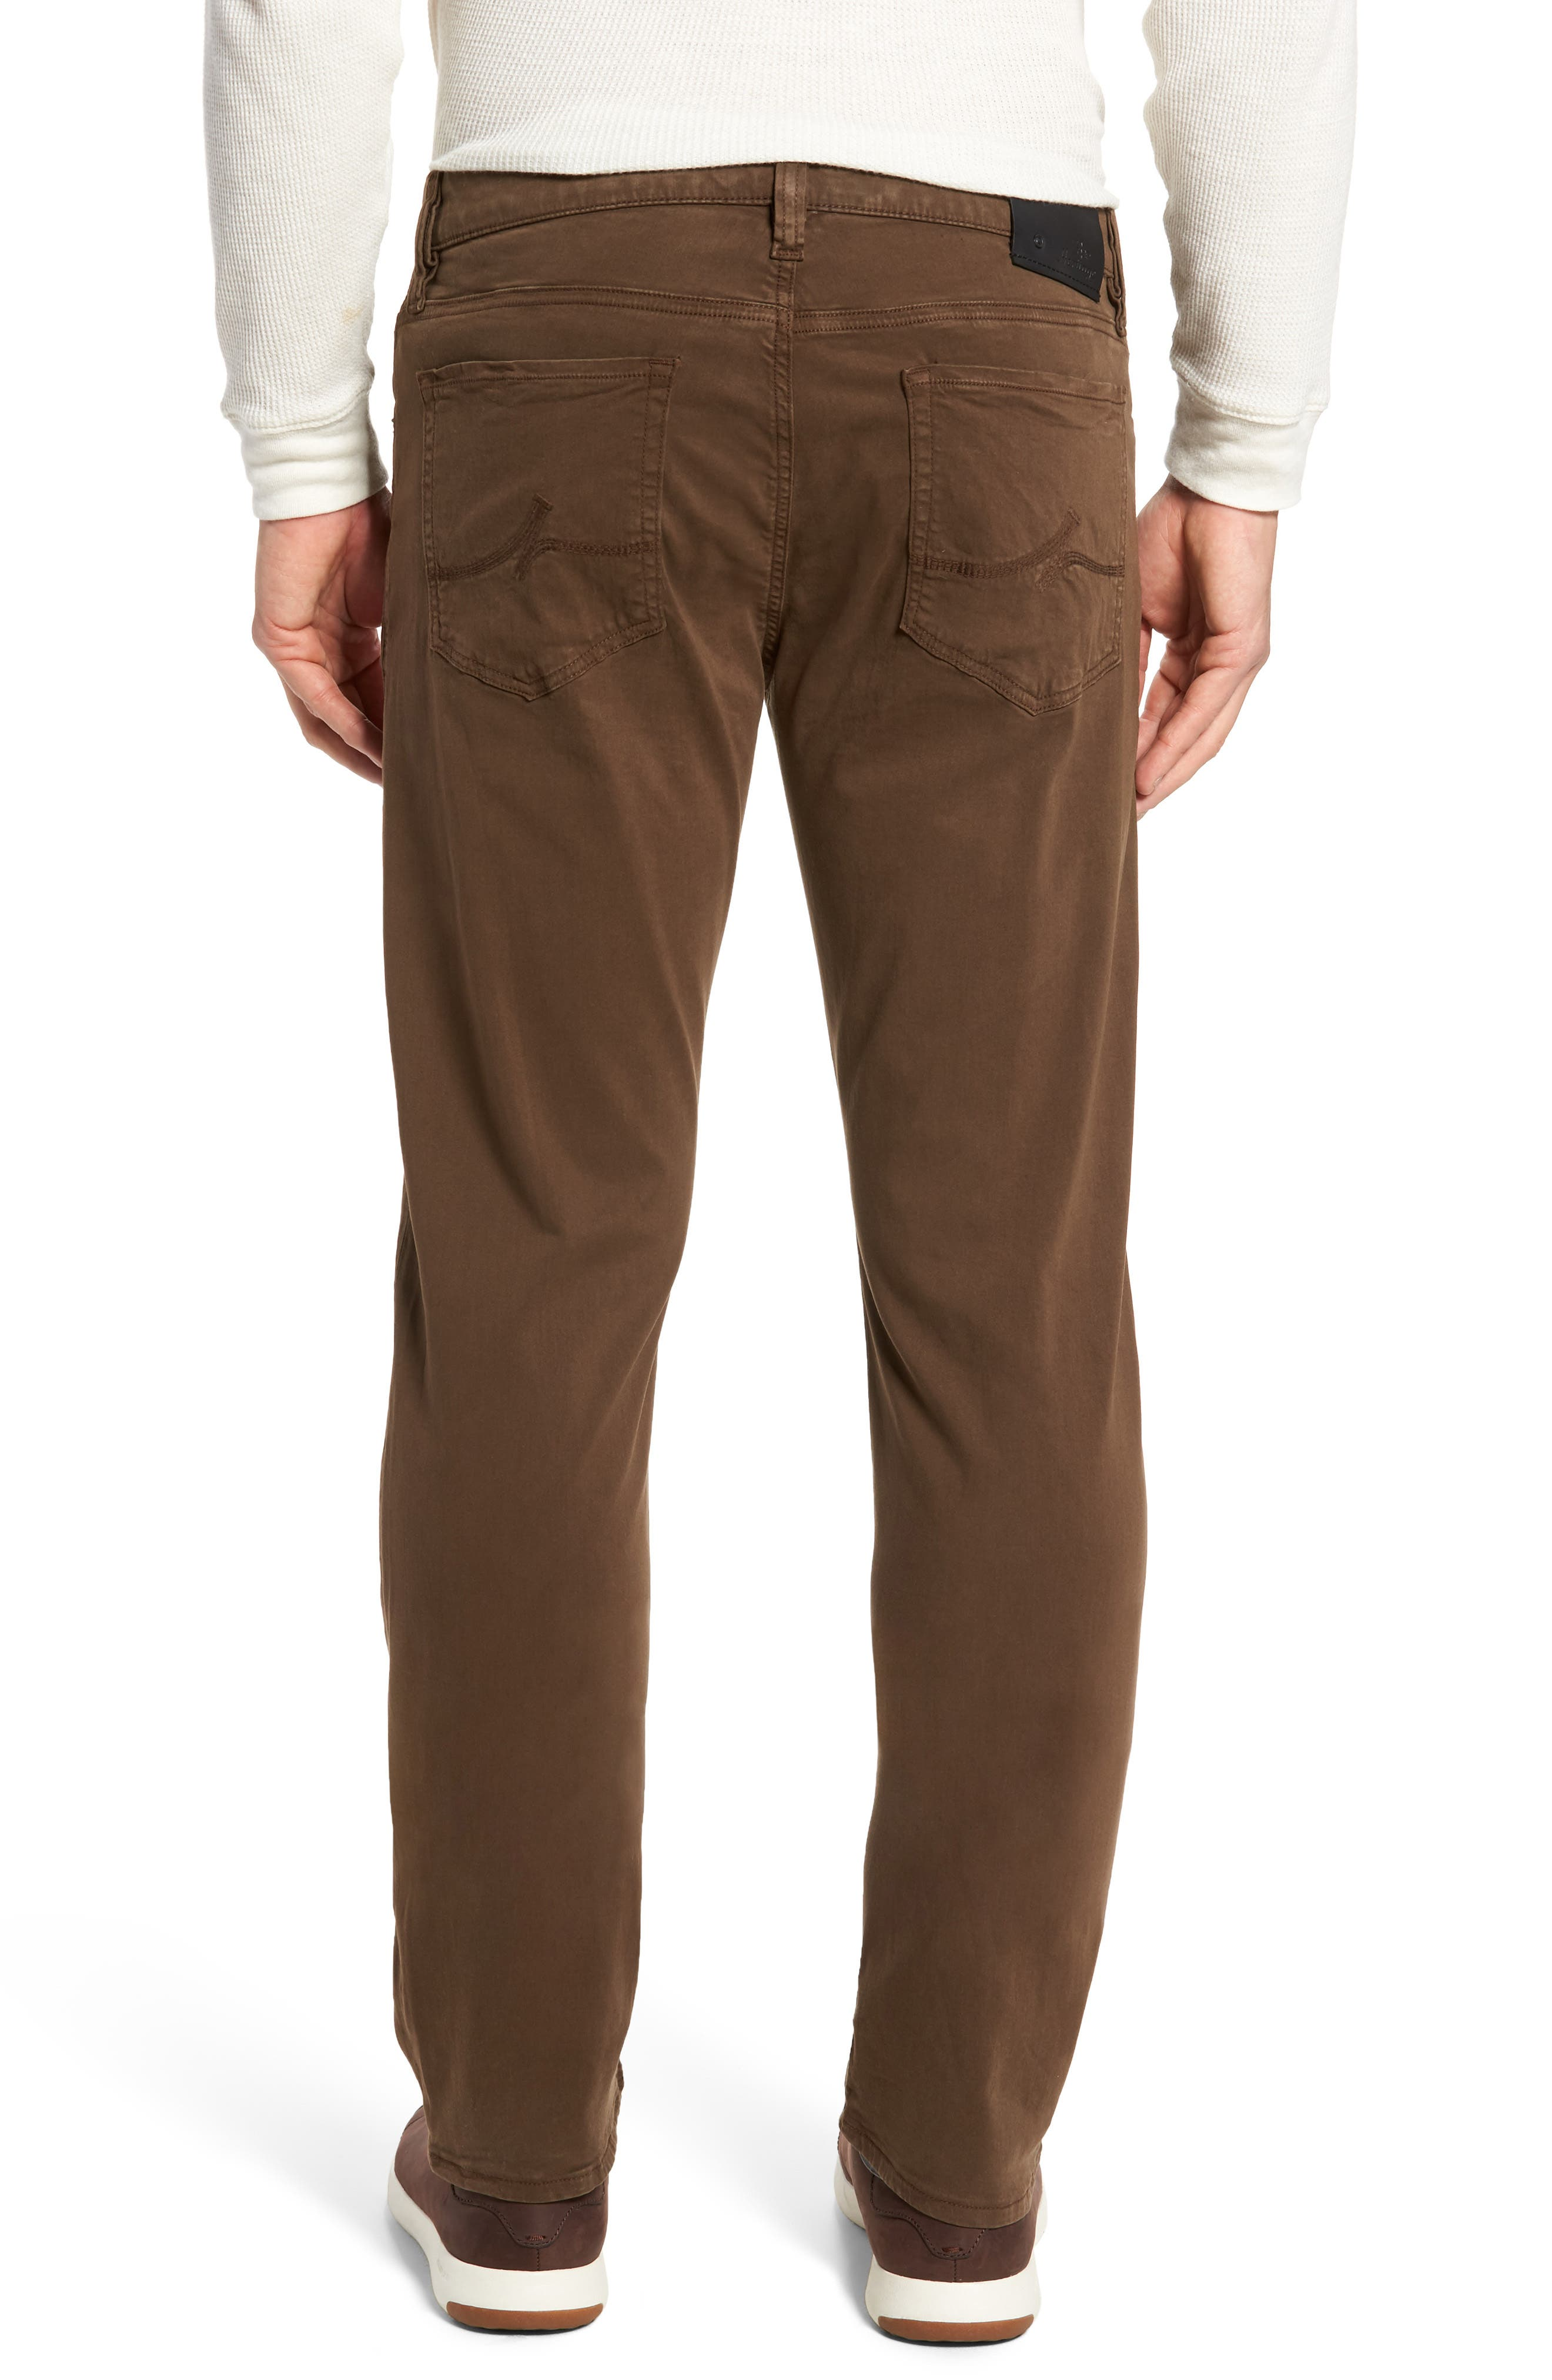 Courage Straight Leg Twill Pants,                             Alternate thumbnail 2, color,                             200